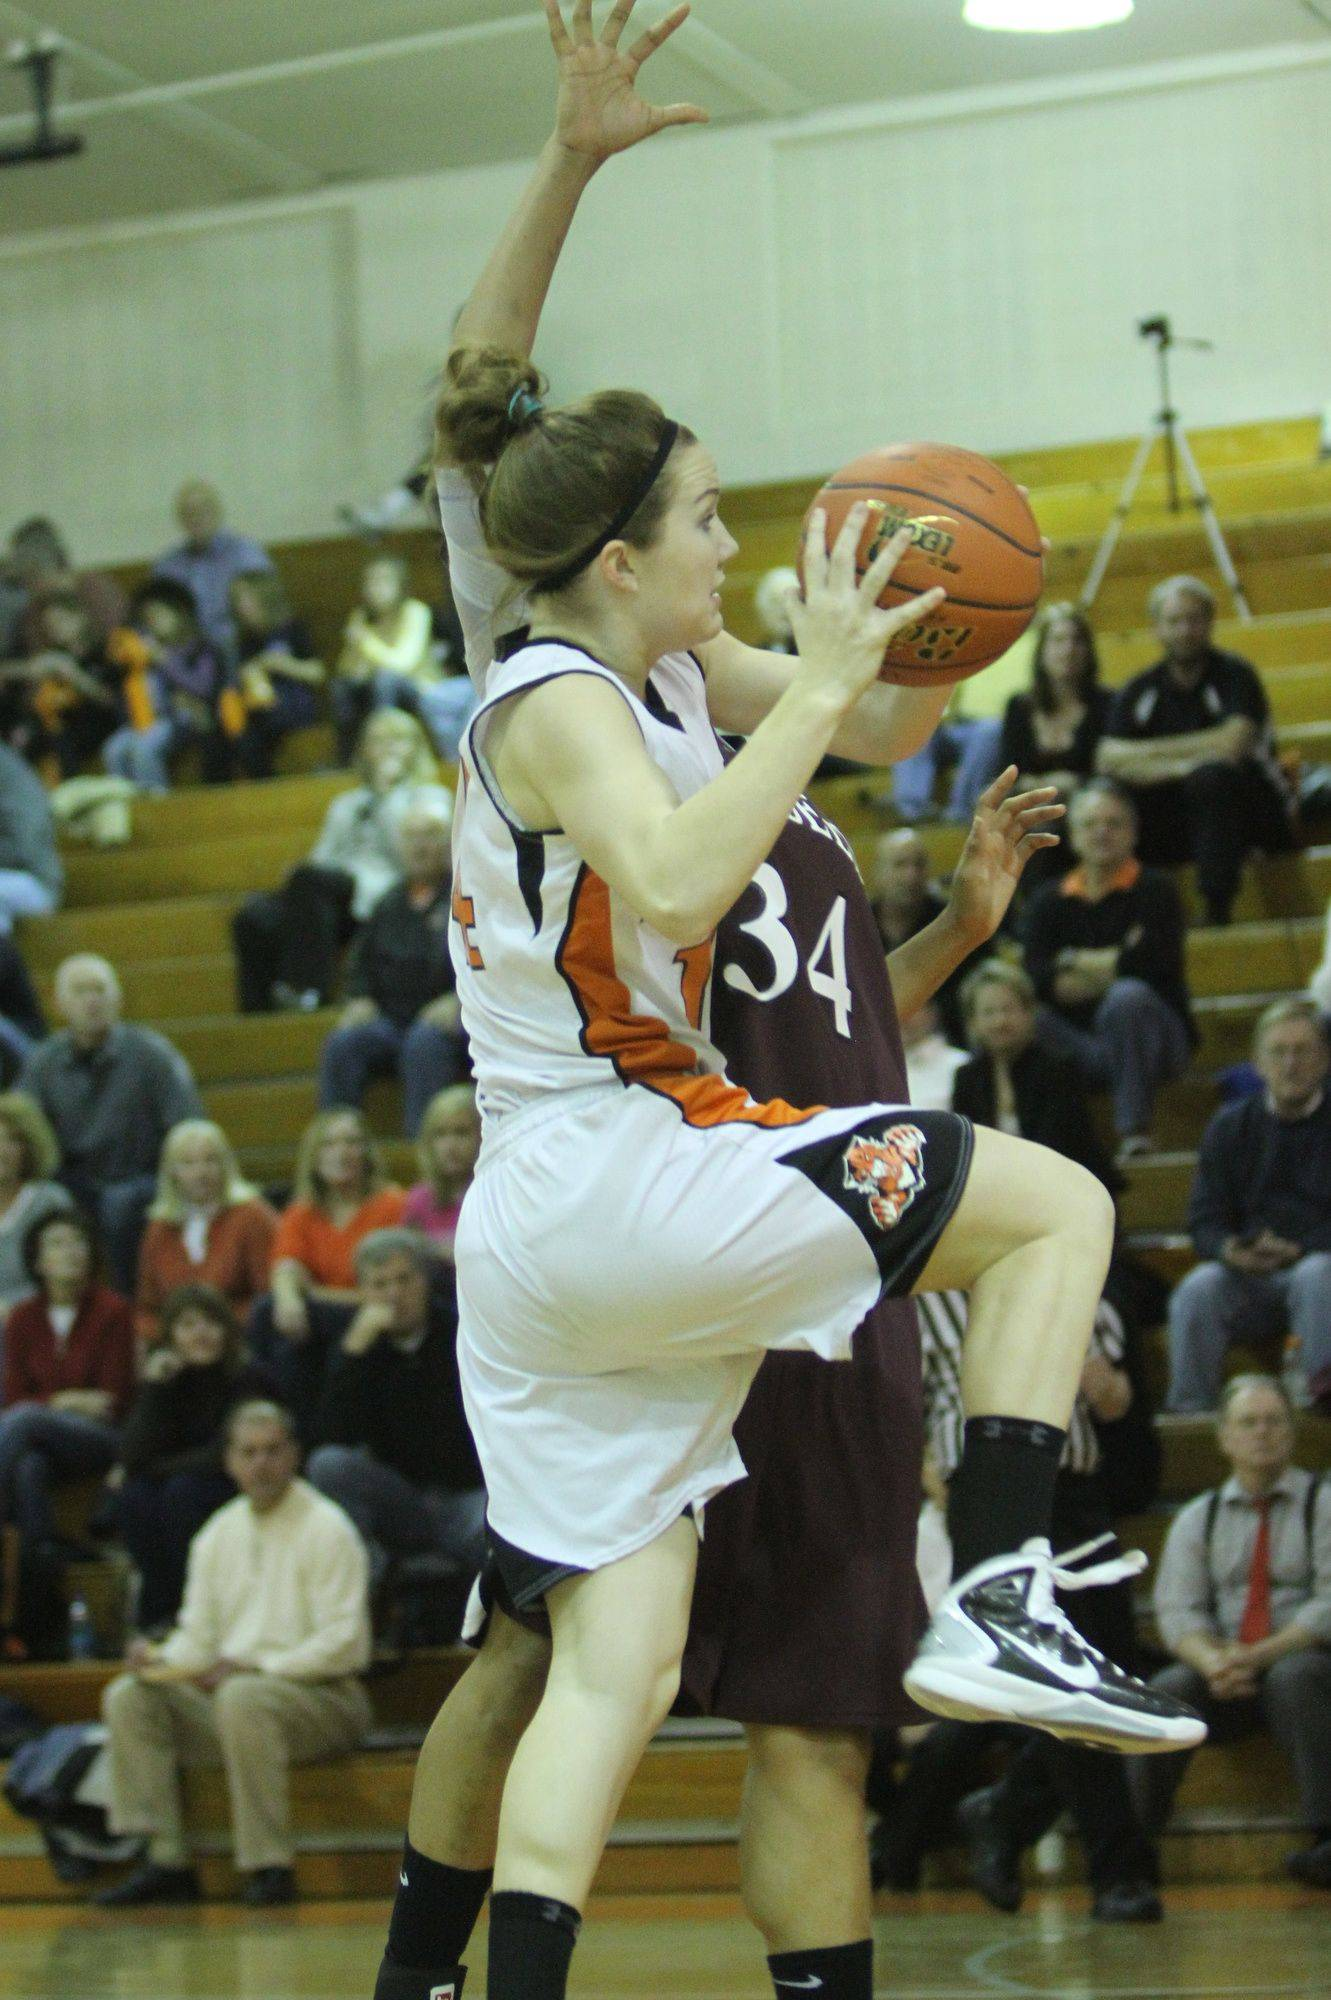 Images from the Zion-Benton at Libertyville girls basketball game Wednesday, December 8.